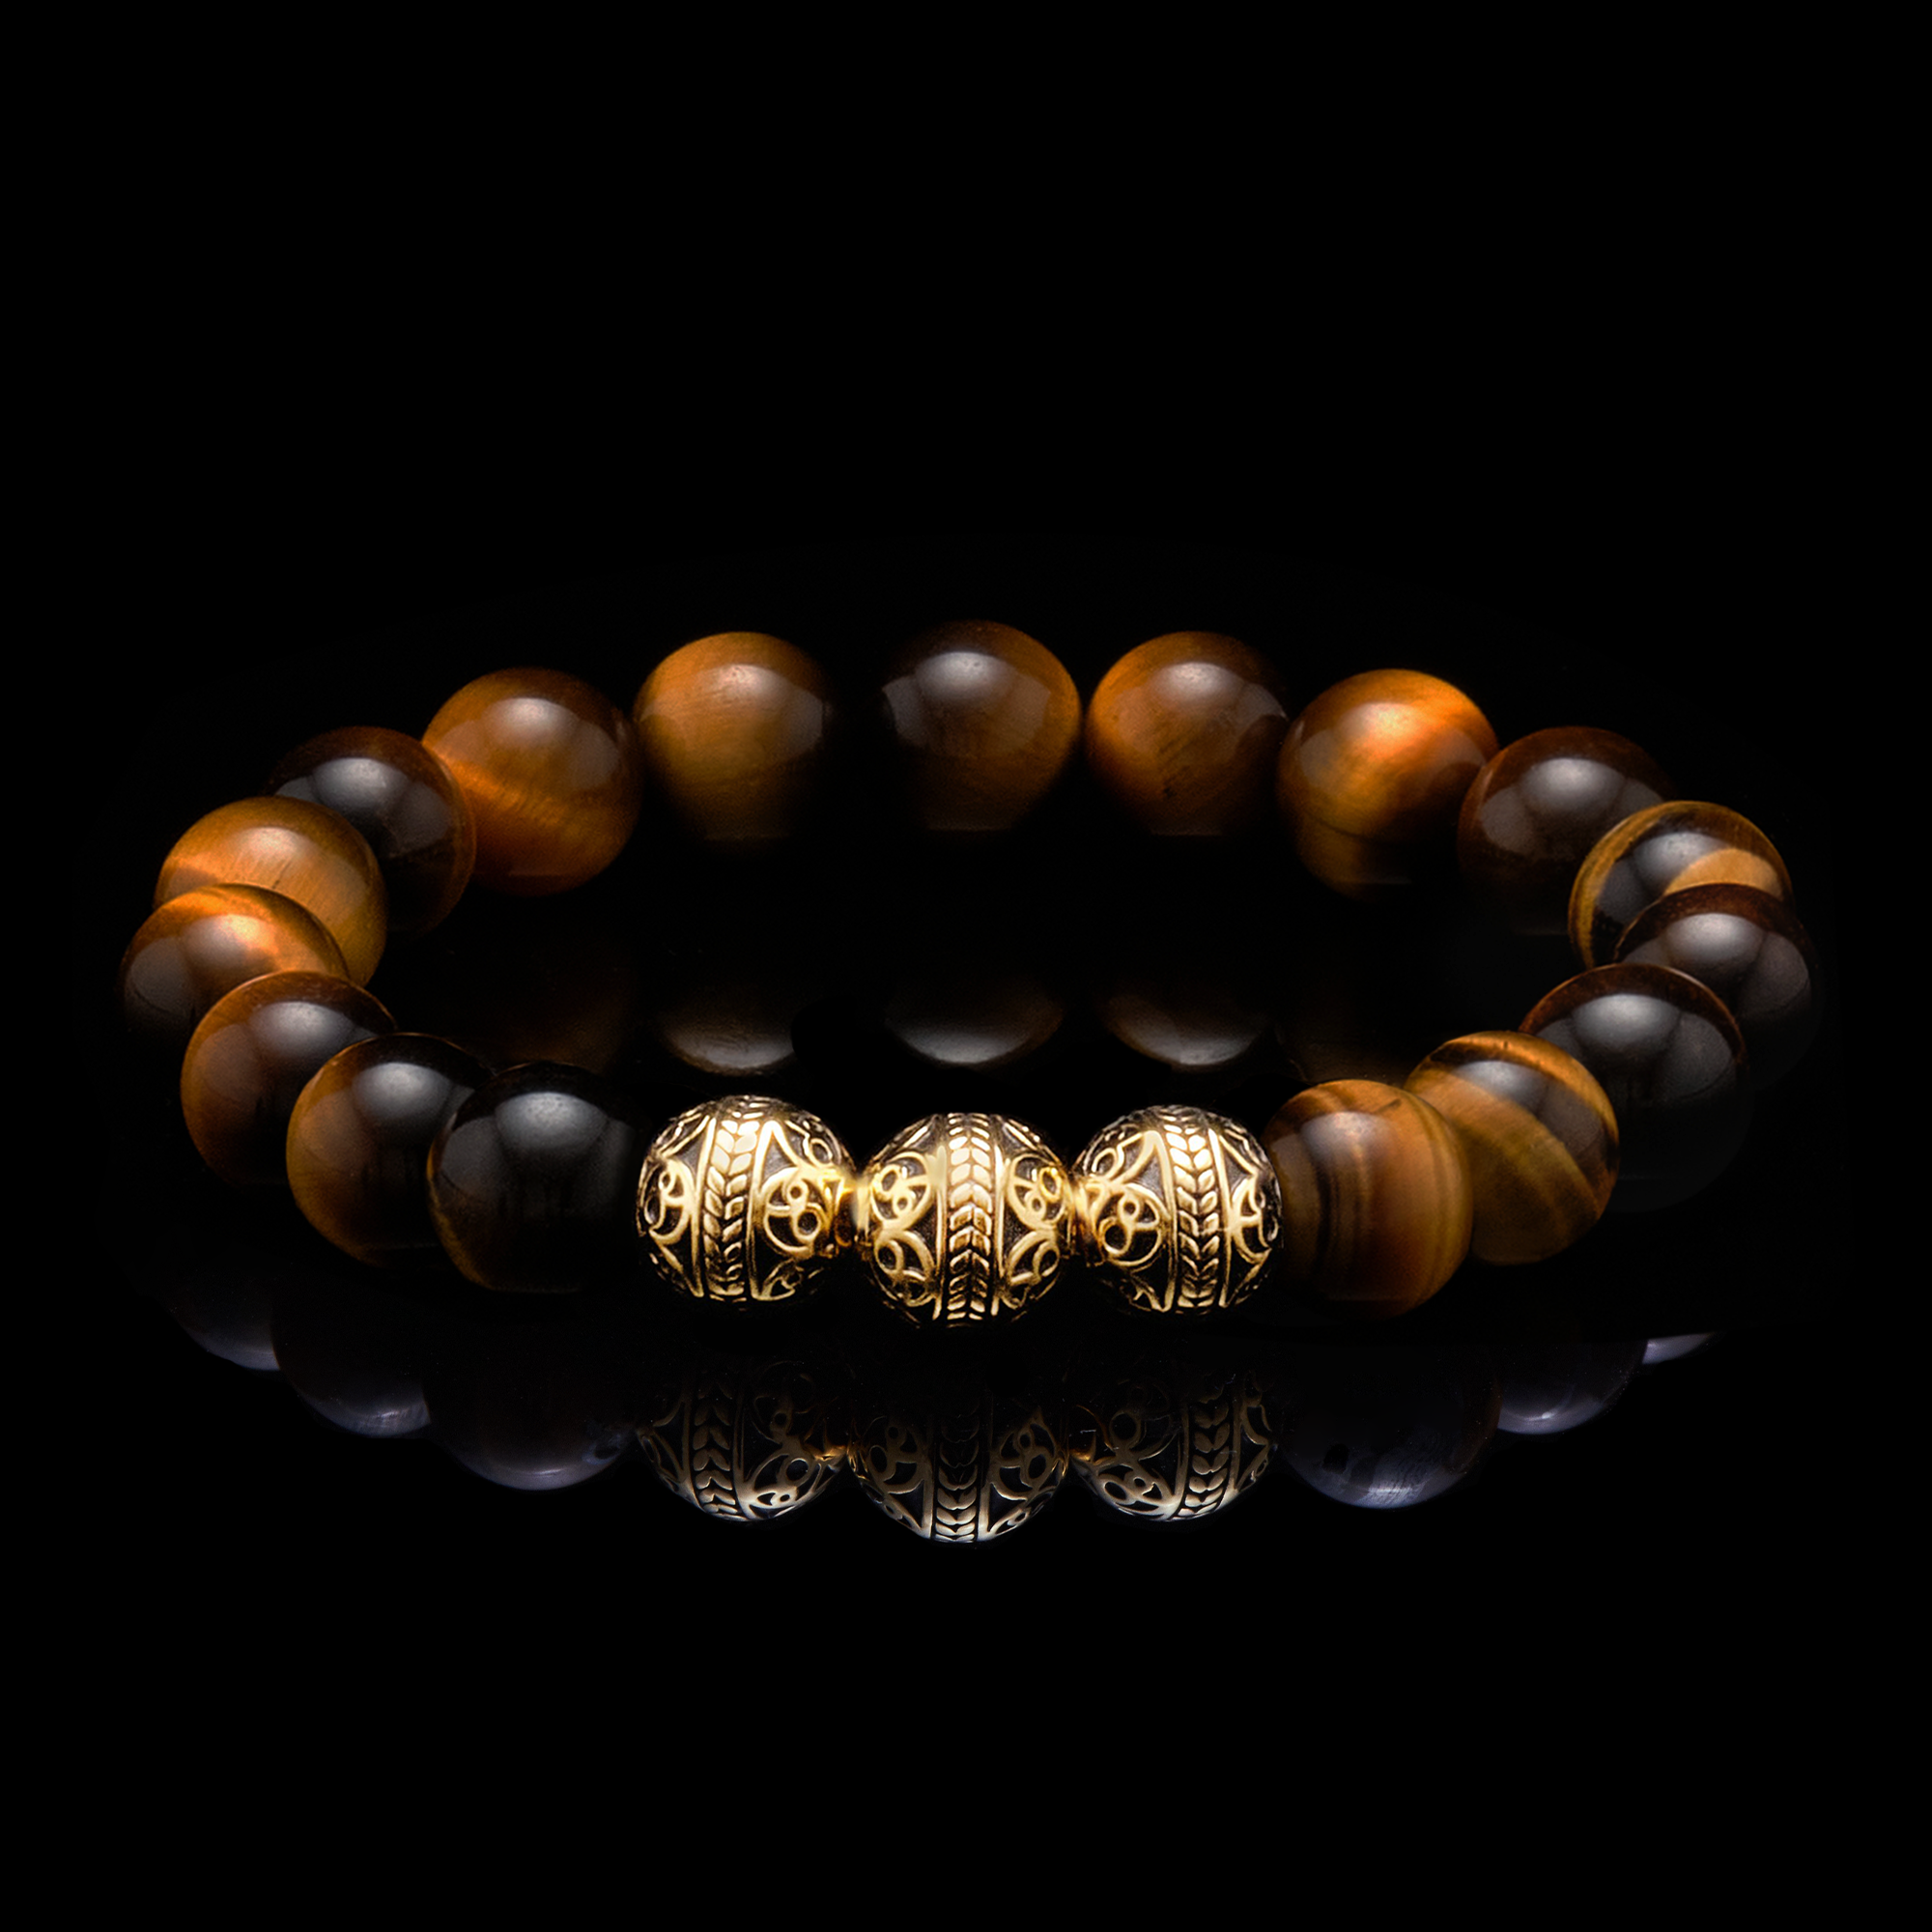 We bring you the Gold Classic Tiger Eye bracelet, a men's beaded bracelet, made for those men in leadership positions, as the tiger eye stone helps you stay centered and calm despite the ups and downs. This Tiger Eye beaded bracelet with a touch of gold is the men's beaded bracelet to have with you when there is an important decision to be made, as the tiger eye stone will balance your inner self and you will accept whatever life throws at you.